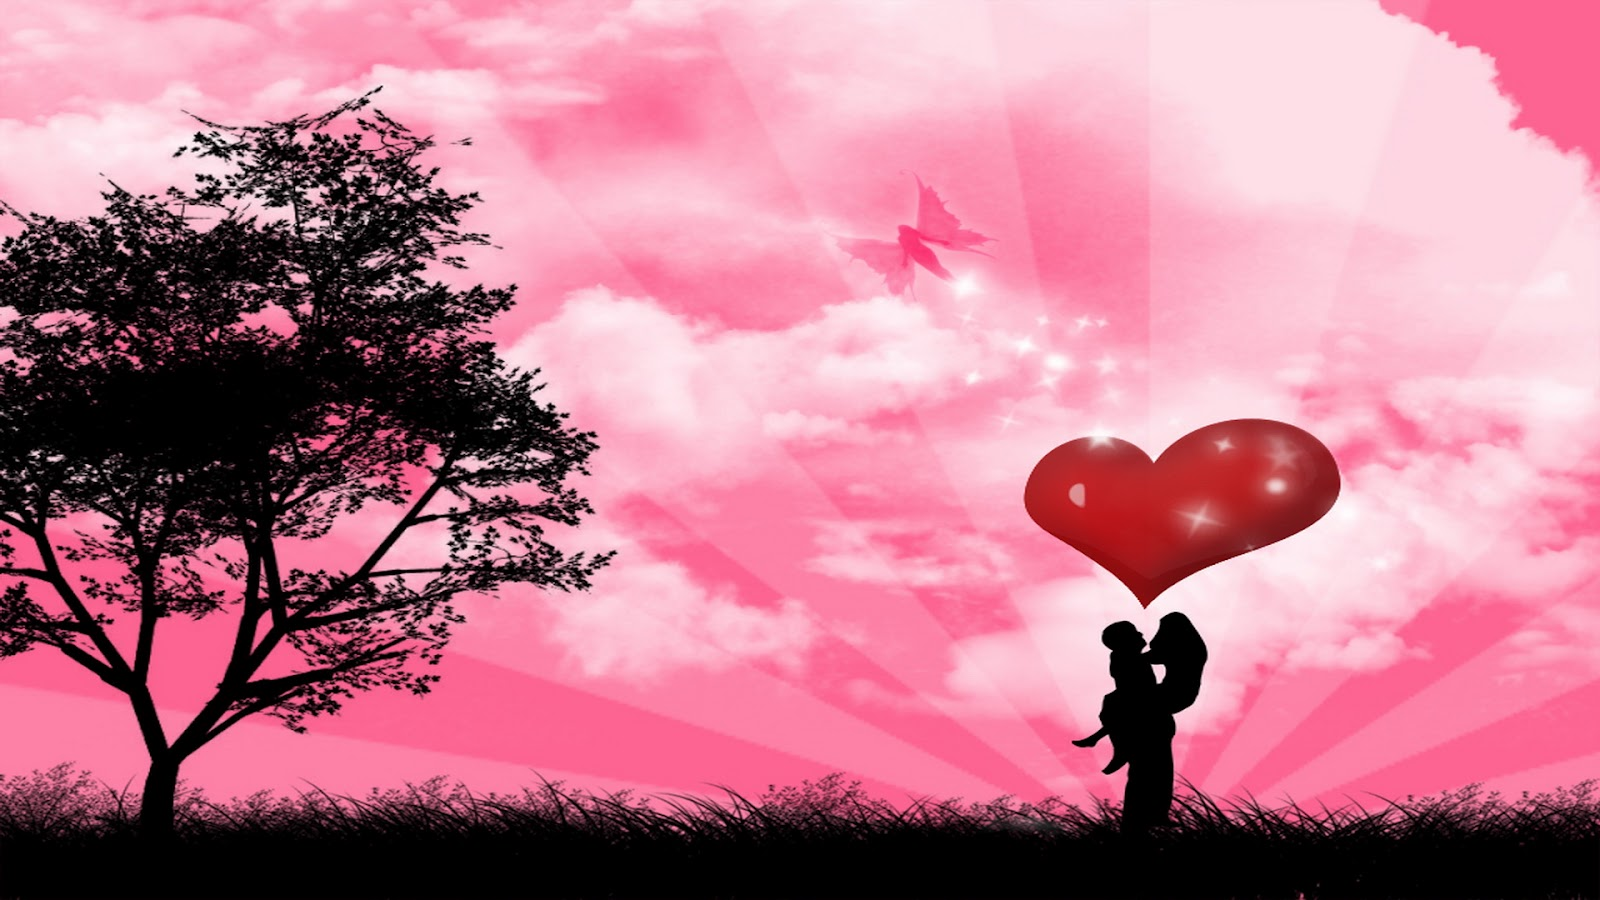 Love Kissing Wallpaper Desktop : Anime Love Wallpapers for Desktop - WallpaperSafari